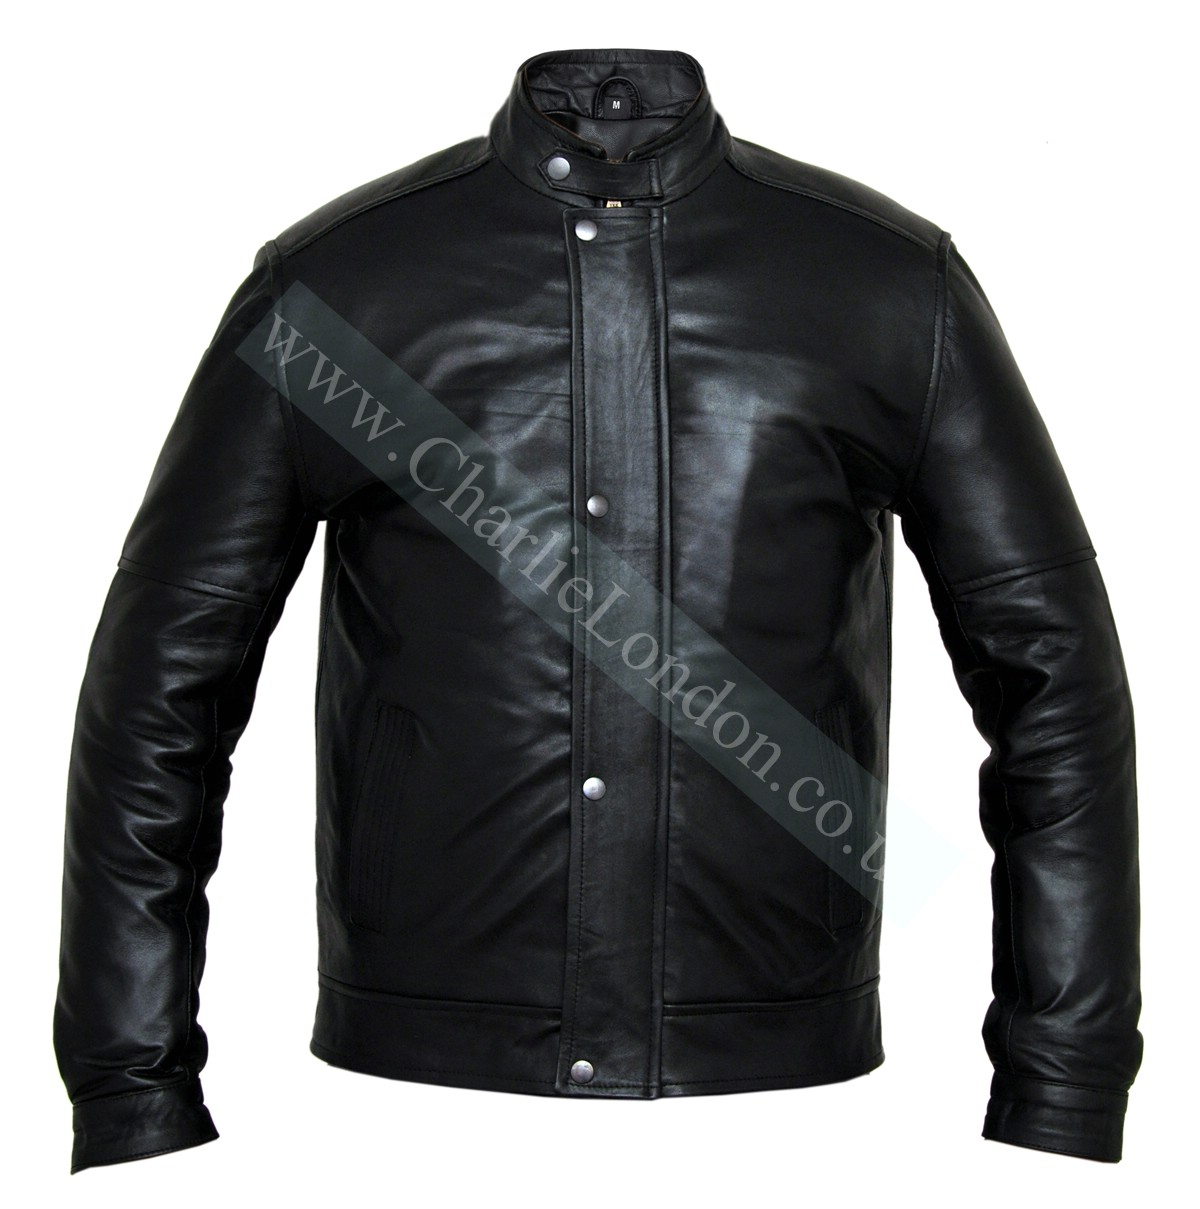 Californication Hank Moody Black Jacket